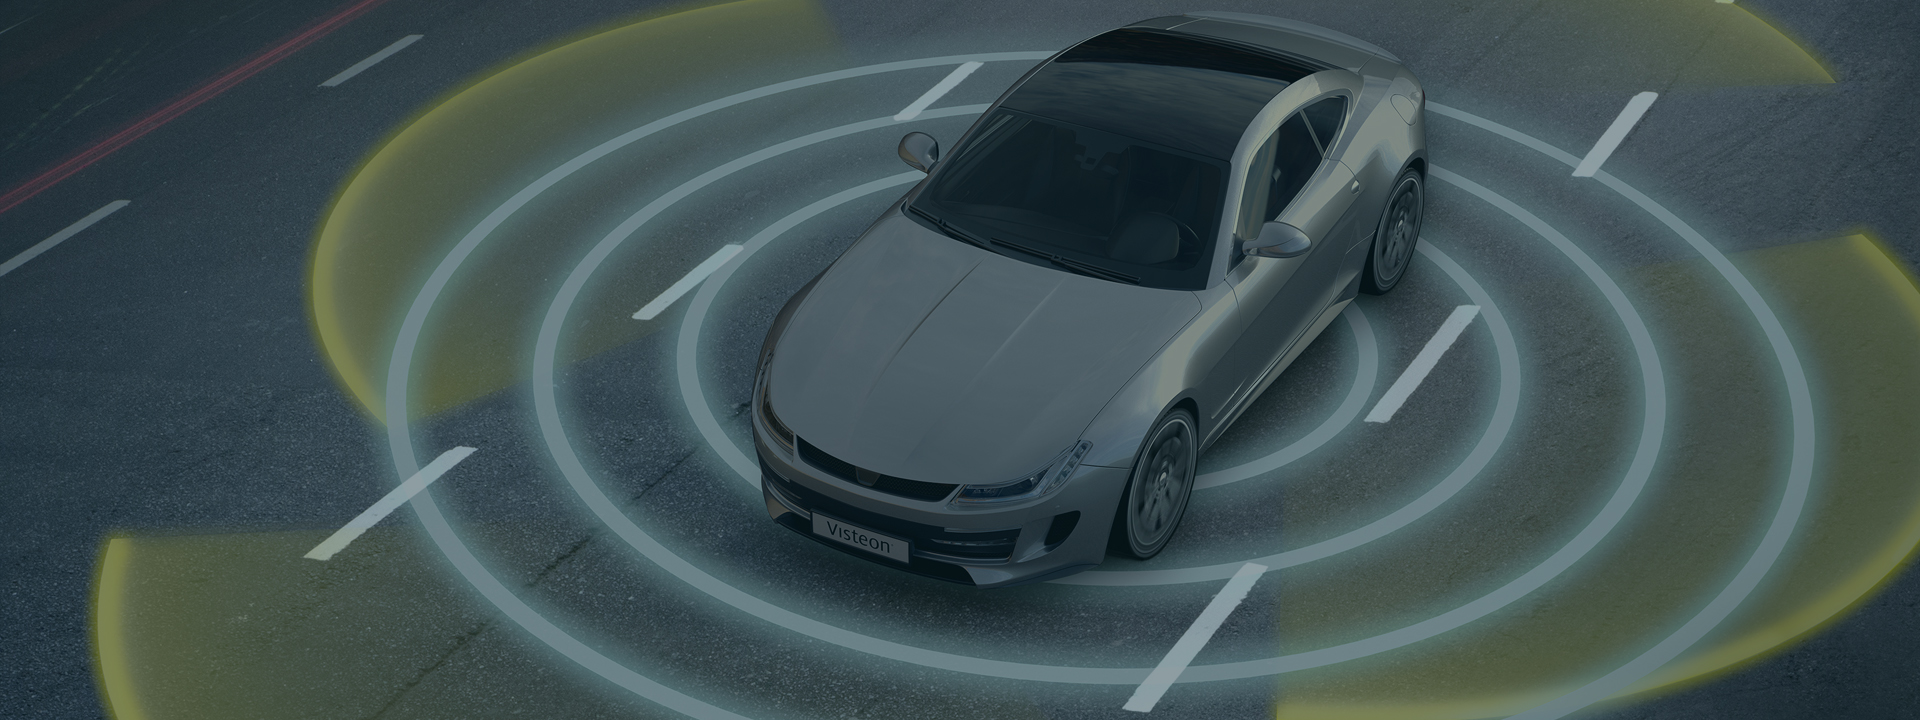 autonomous-car-model-sensing-surroundings-visteon